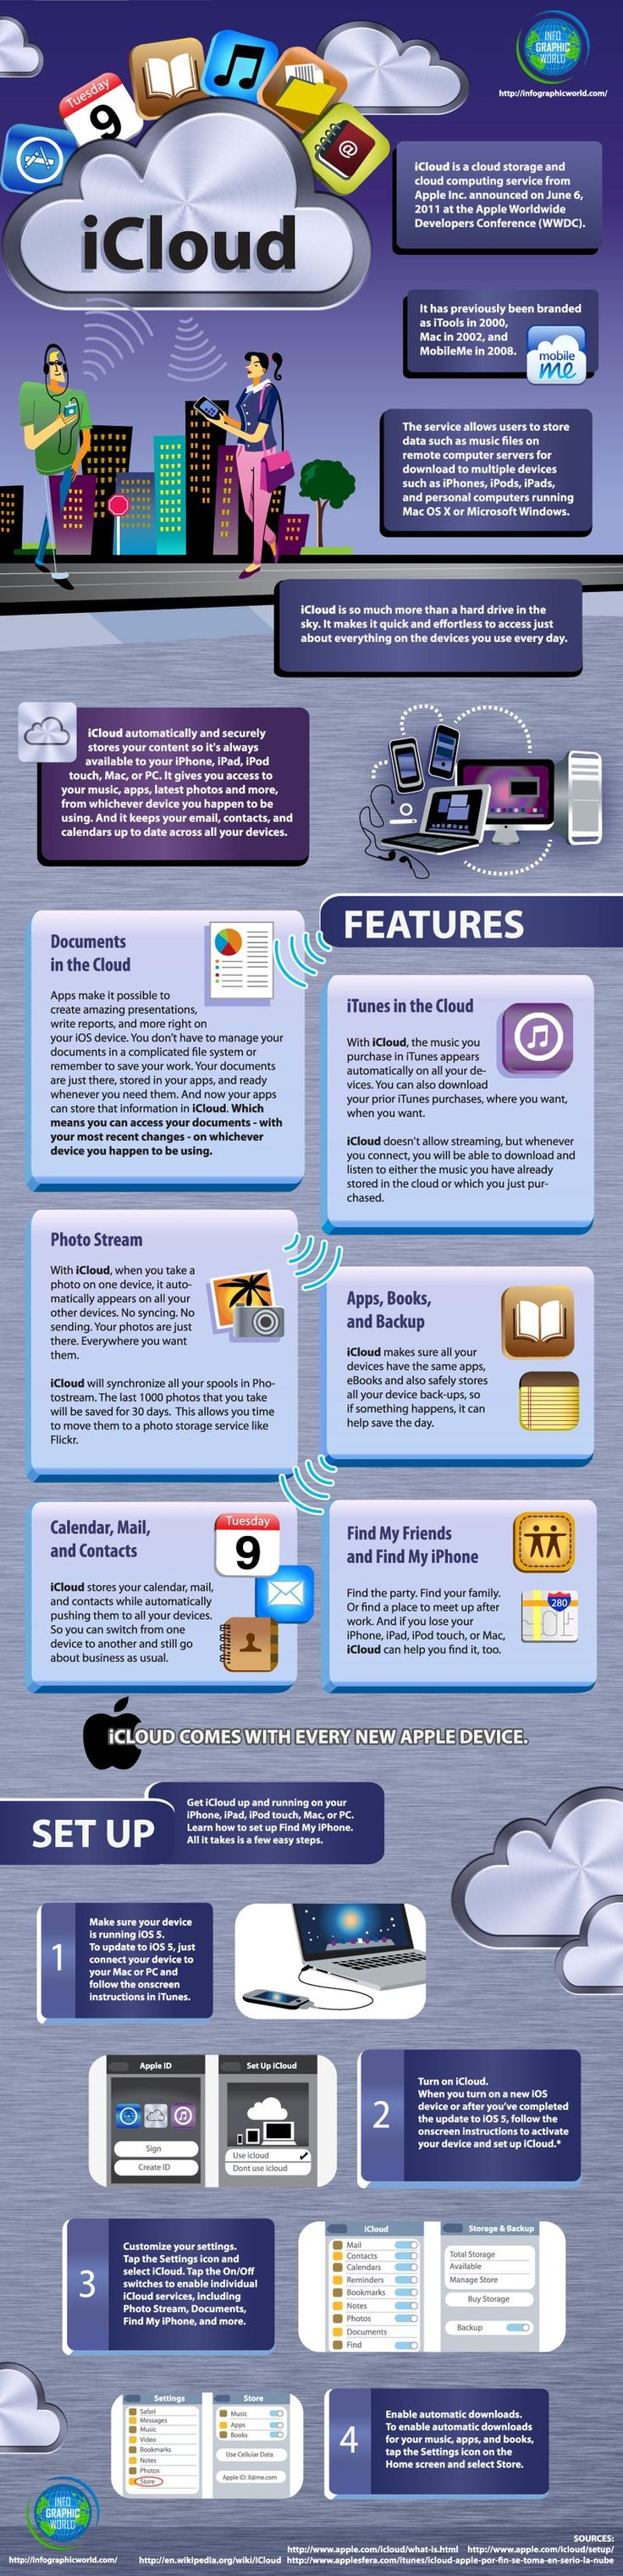 What is iCloud and How Does It Work? #infographic